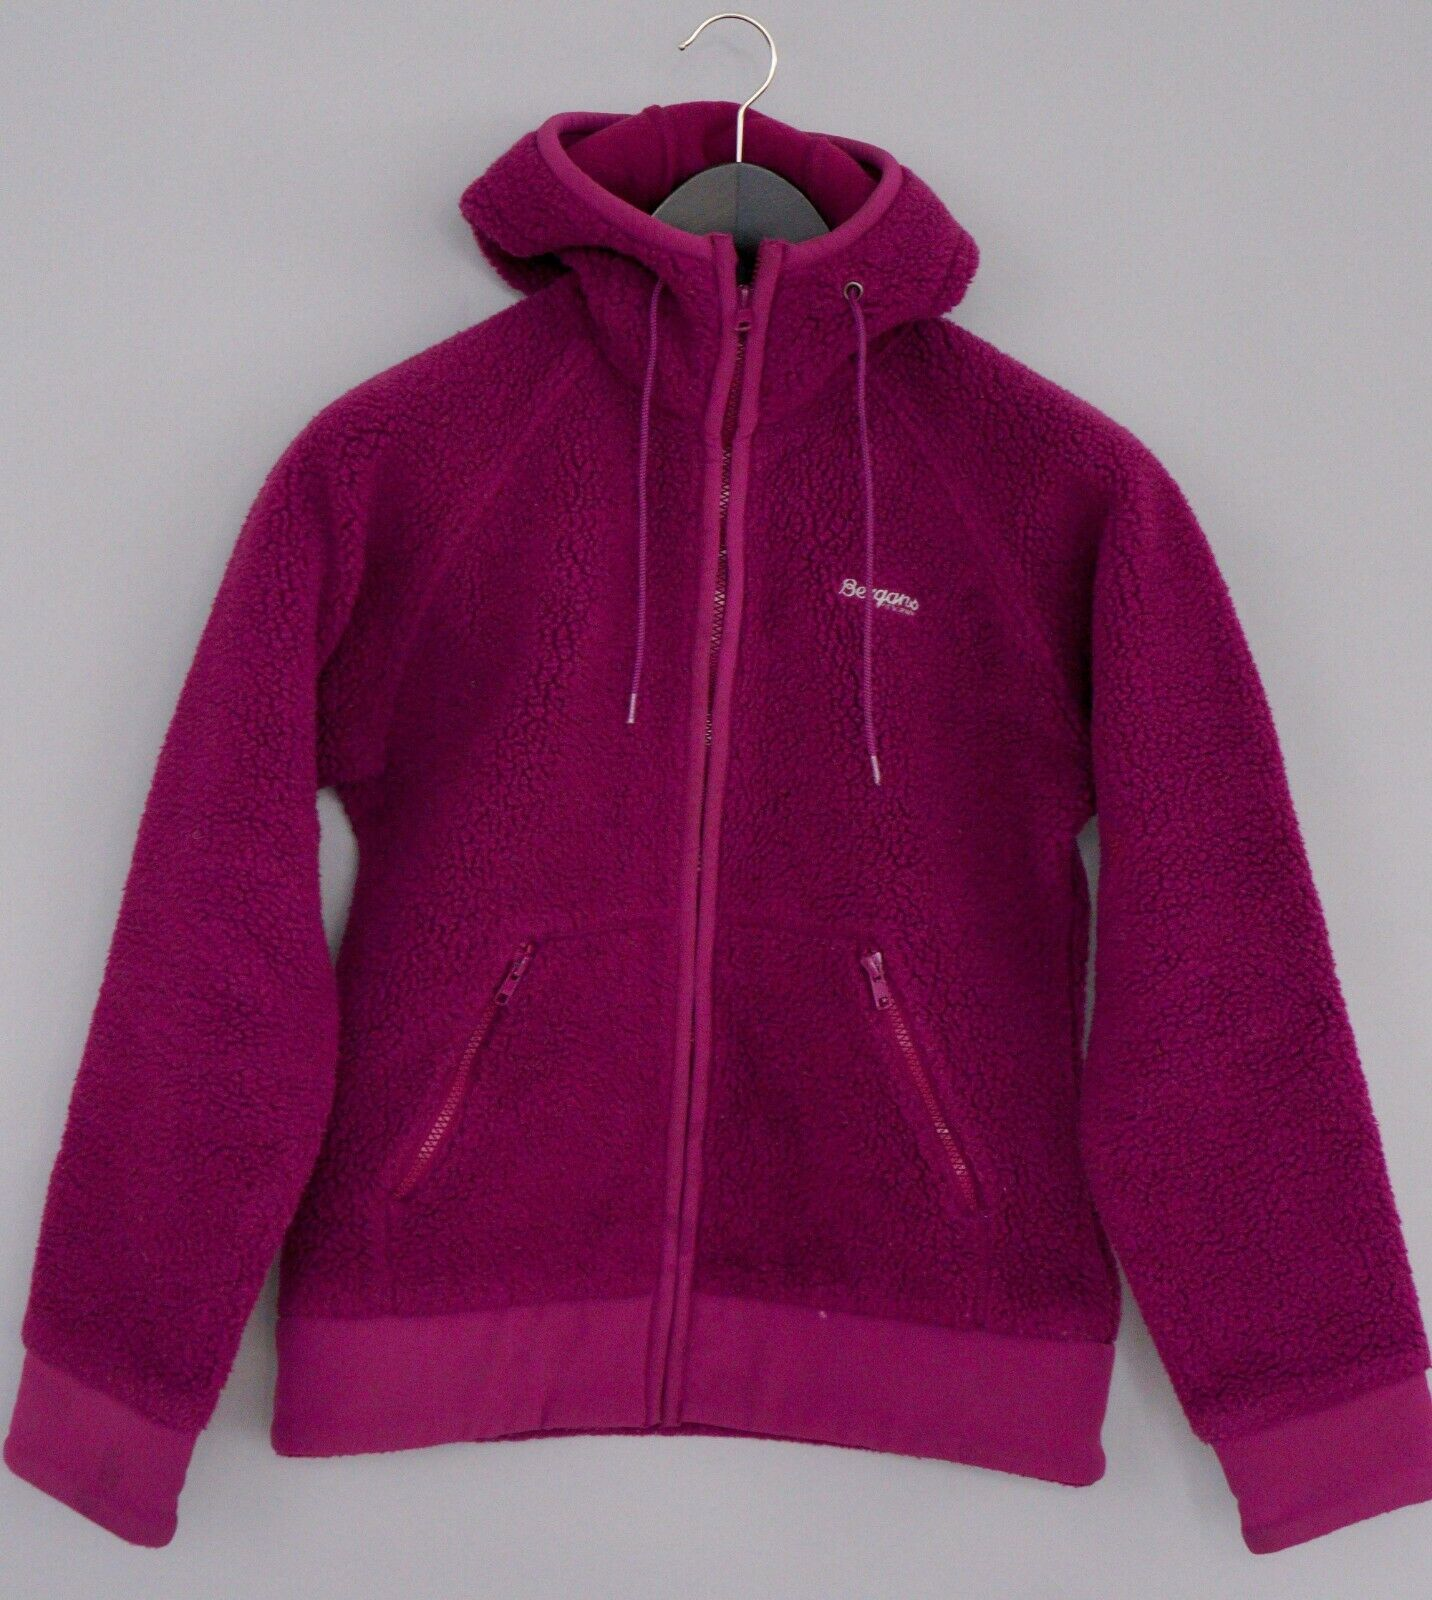 Details about Women Bergans Of Norway Fleece Jacket 5403 Hitra Lady Hiking S UK10 XMO456